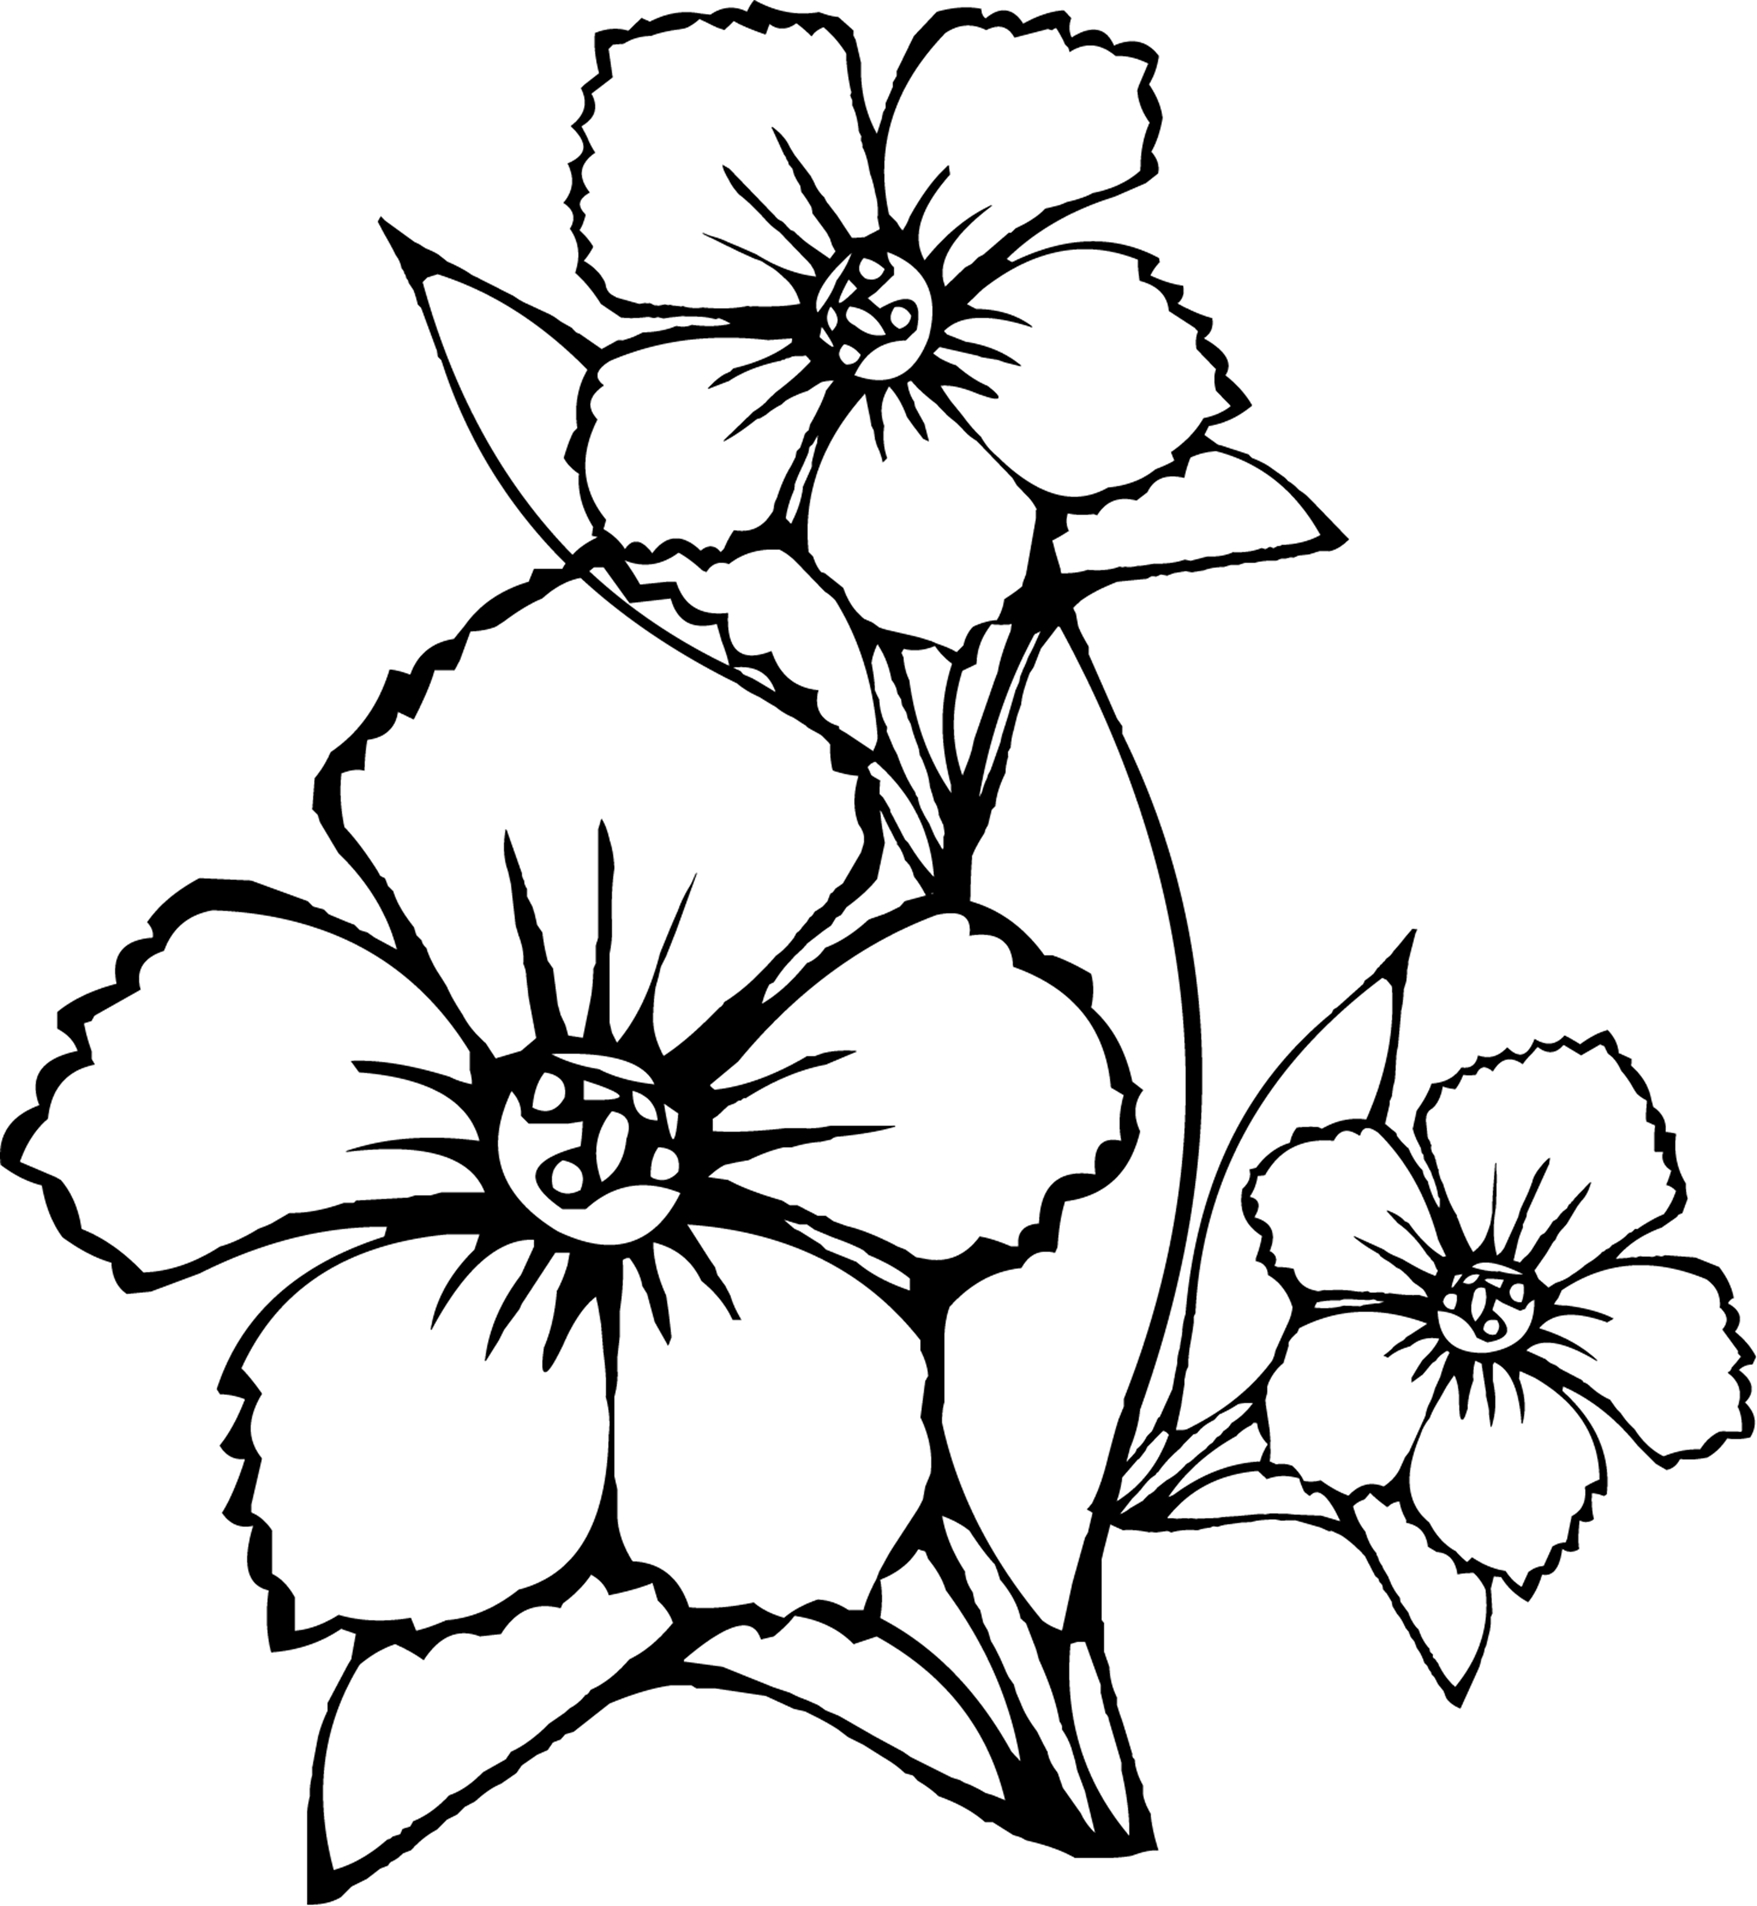 colouring flowers pictures flower coloring printables for kids pictures flowers colouring